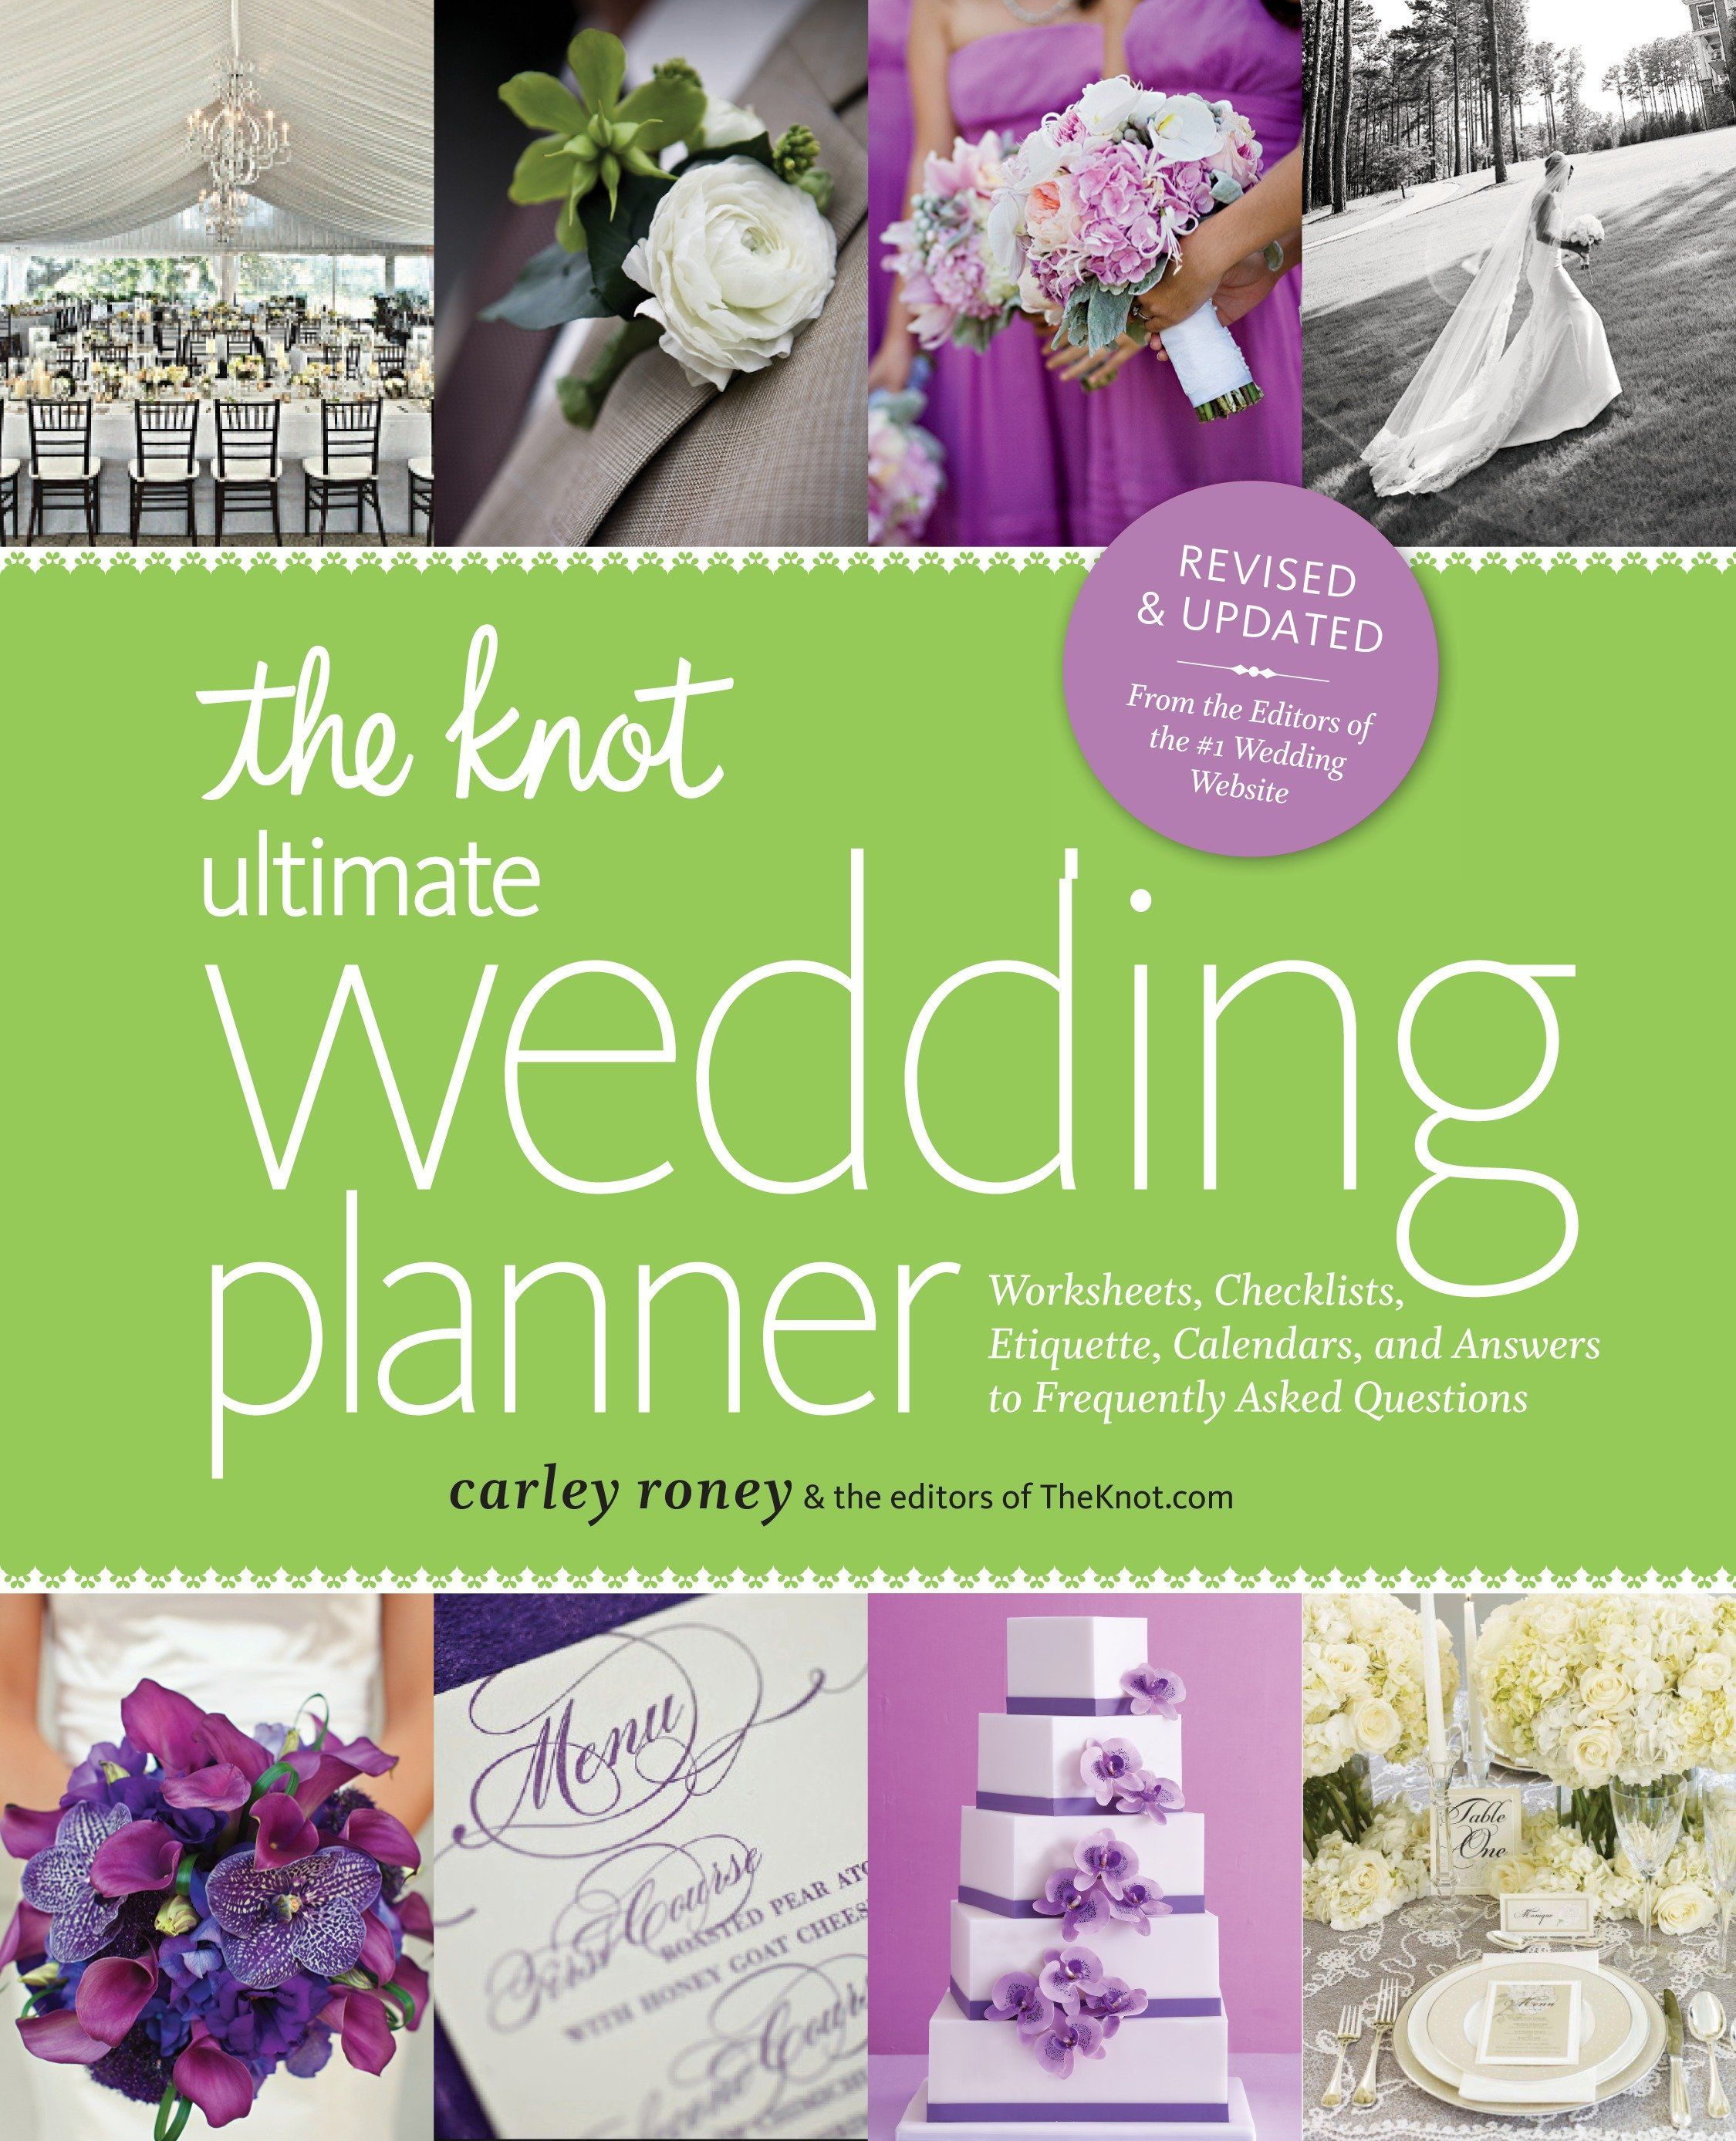 The Knot Ultimate Wedding Planner Revised Edition Paperback Walmart Com In 2020 Wedding Planner Binder Wedding Organizer Planner Wedding Planner Checklist